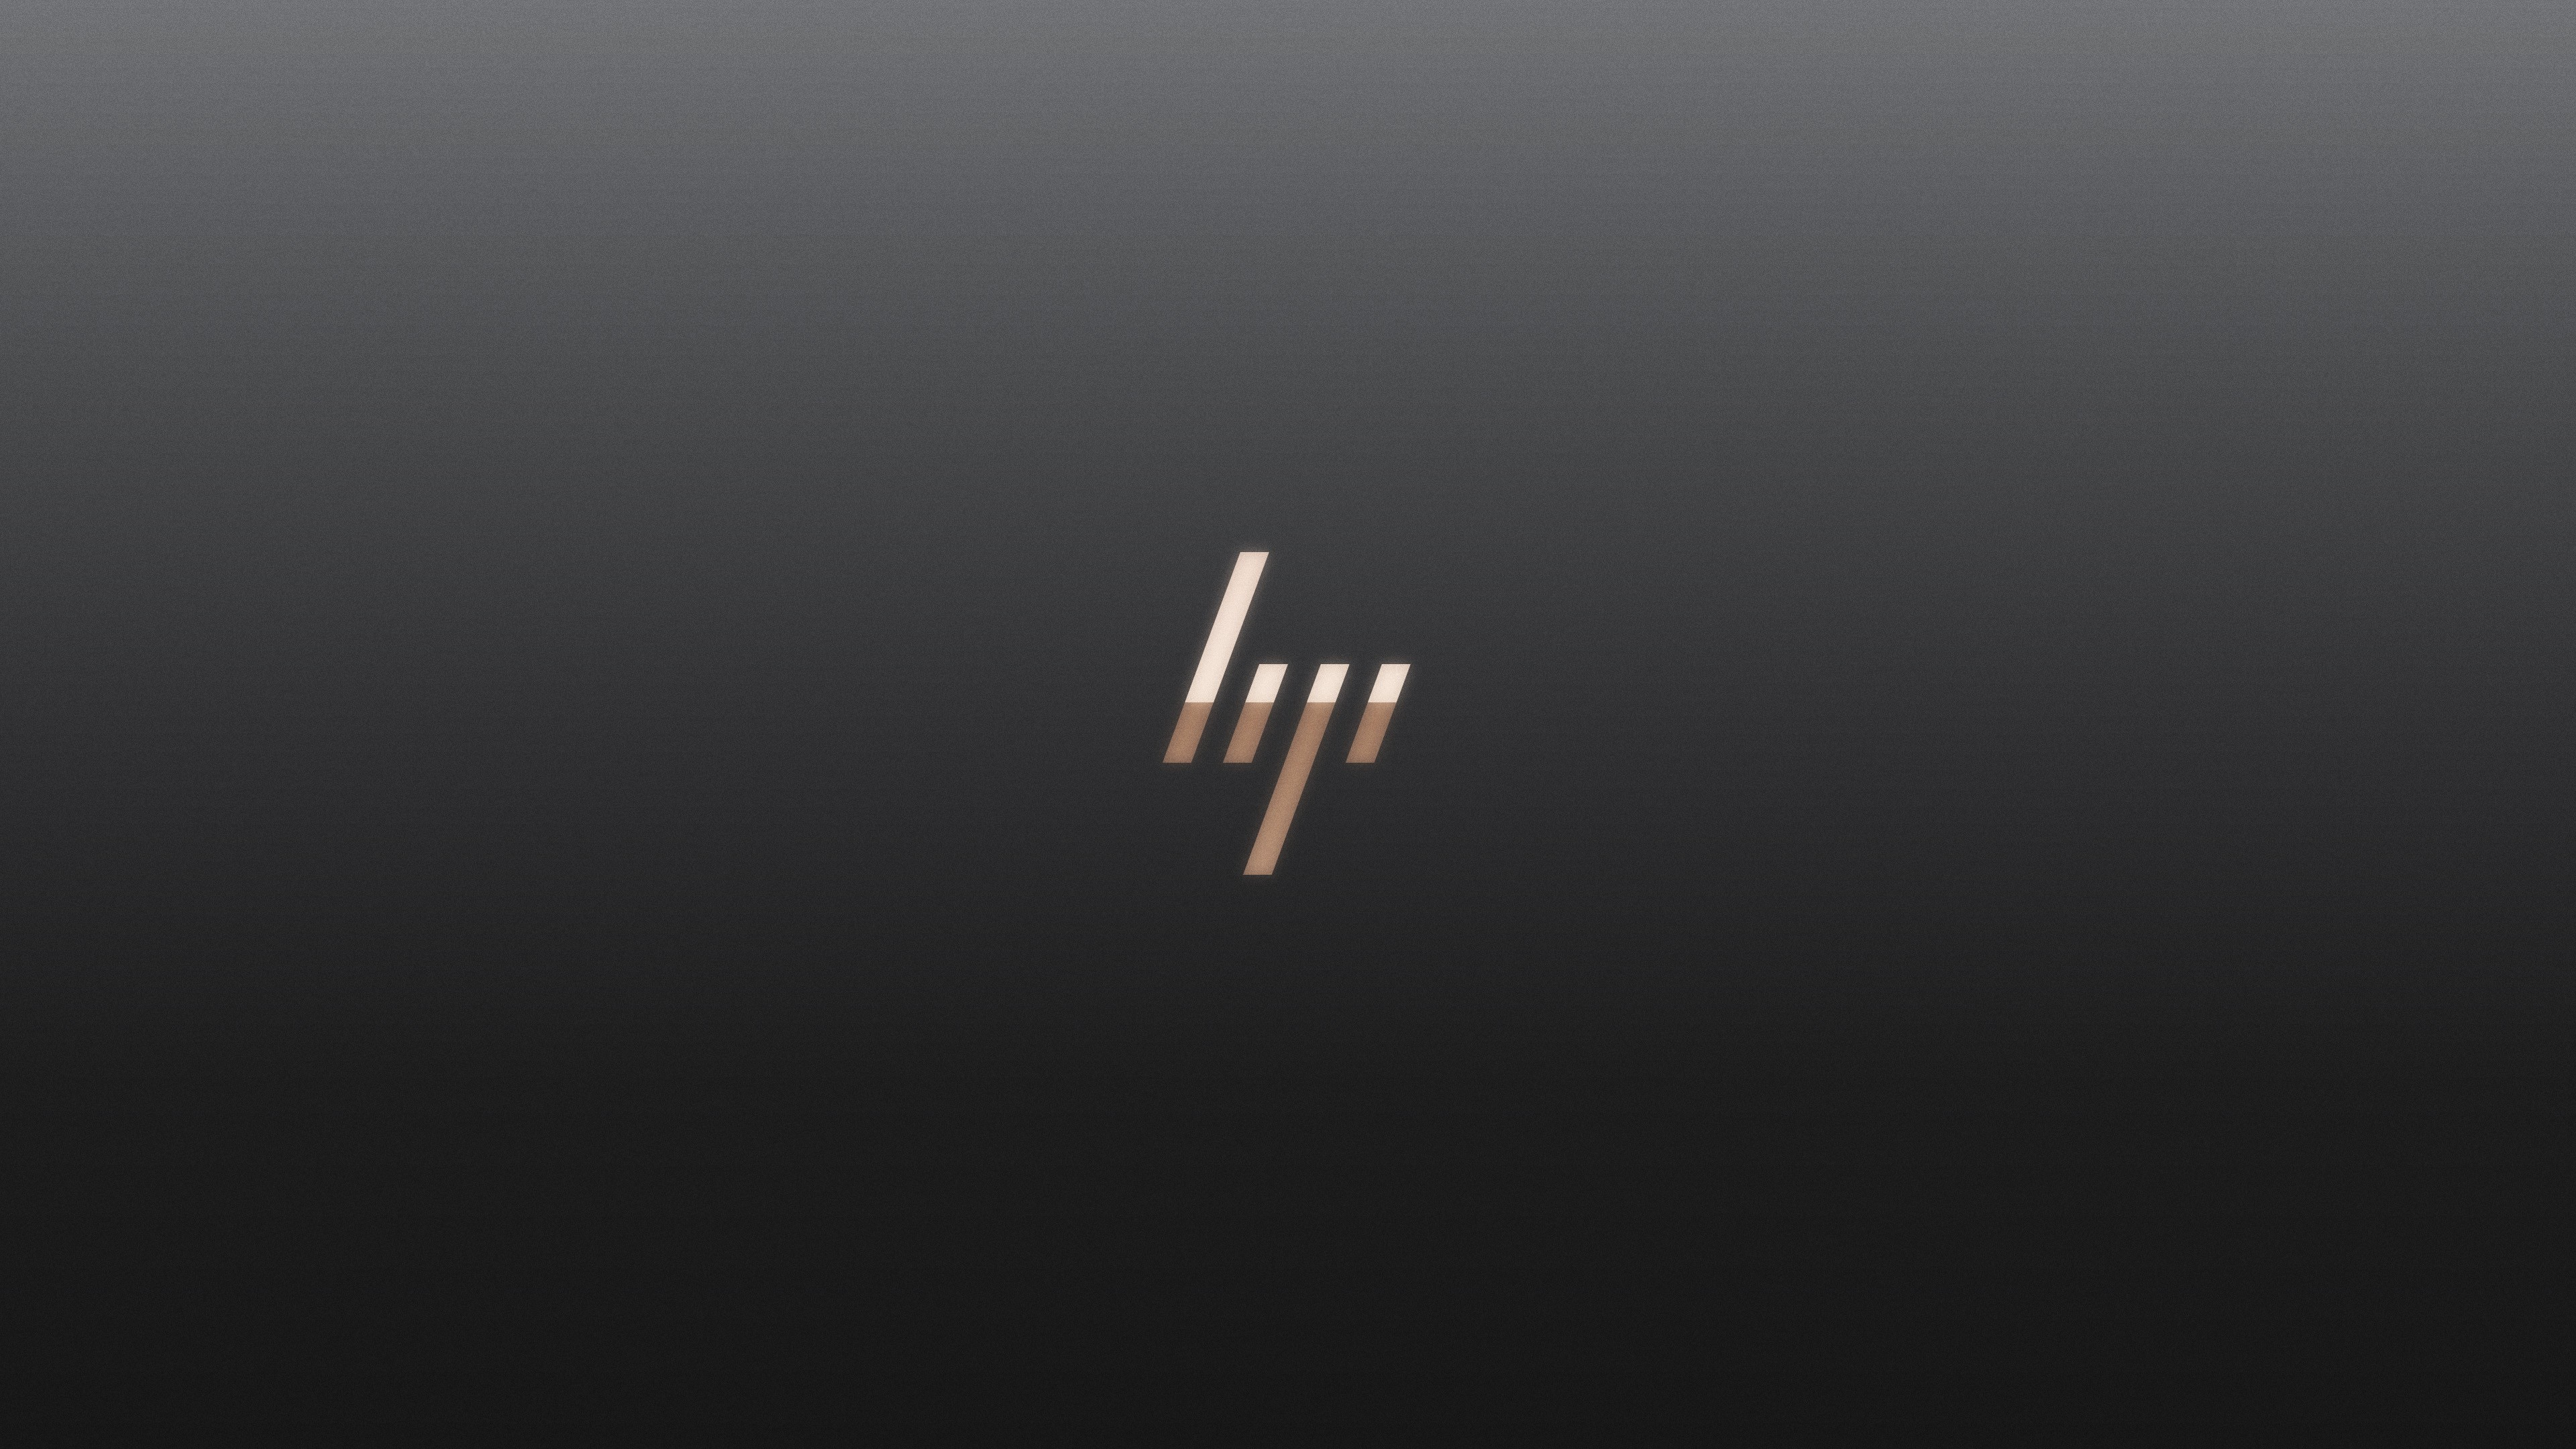 9 hewlett-packard hd wallpapers | background images - wallpaper abyss